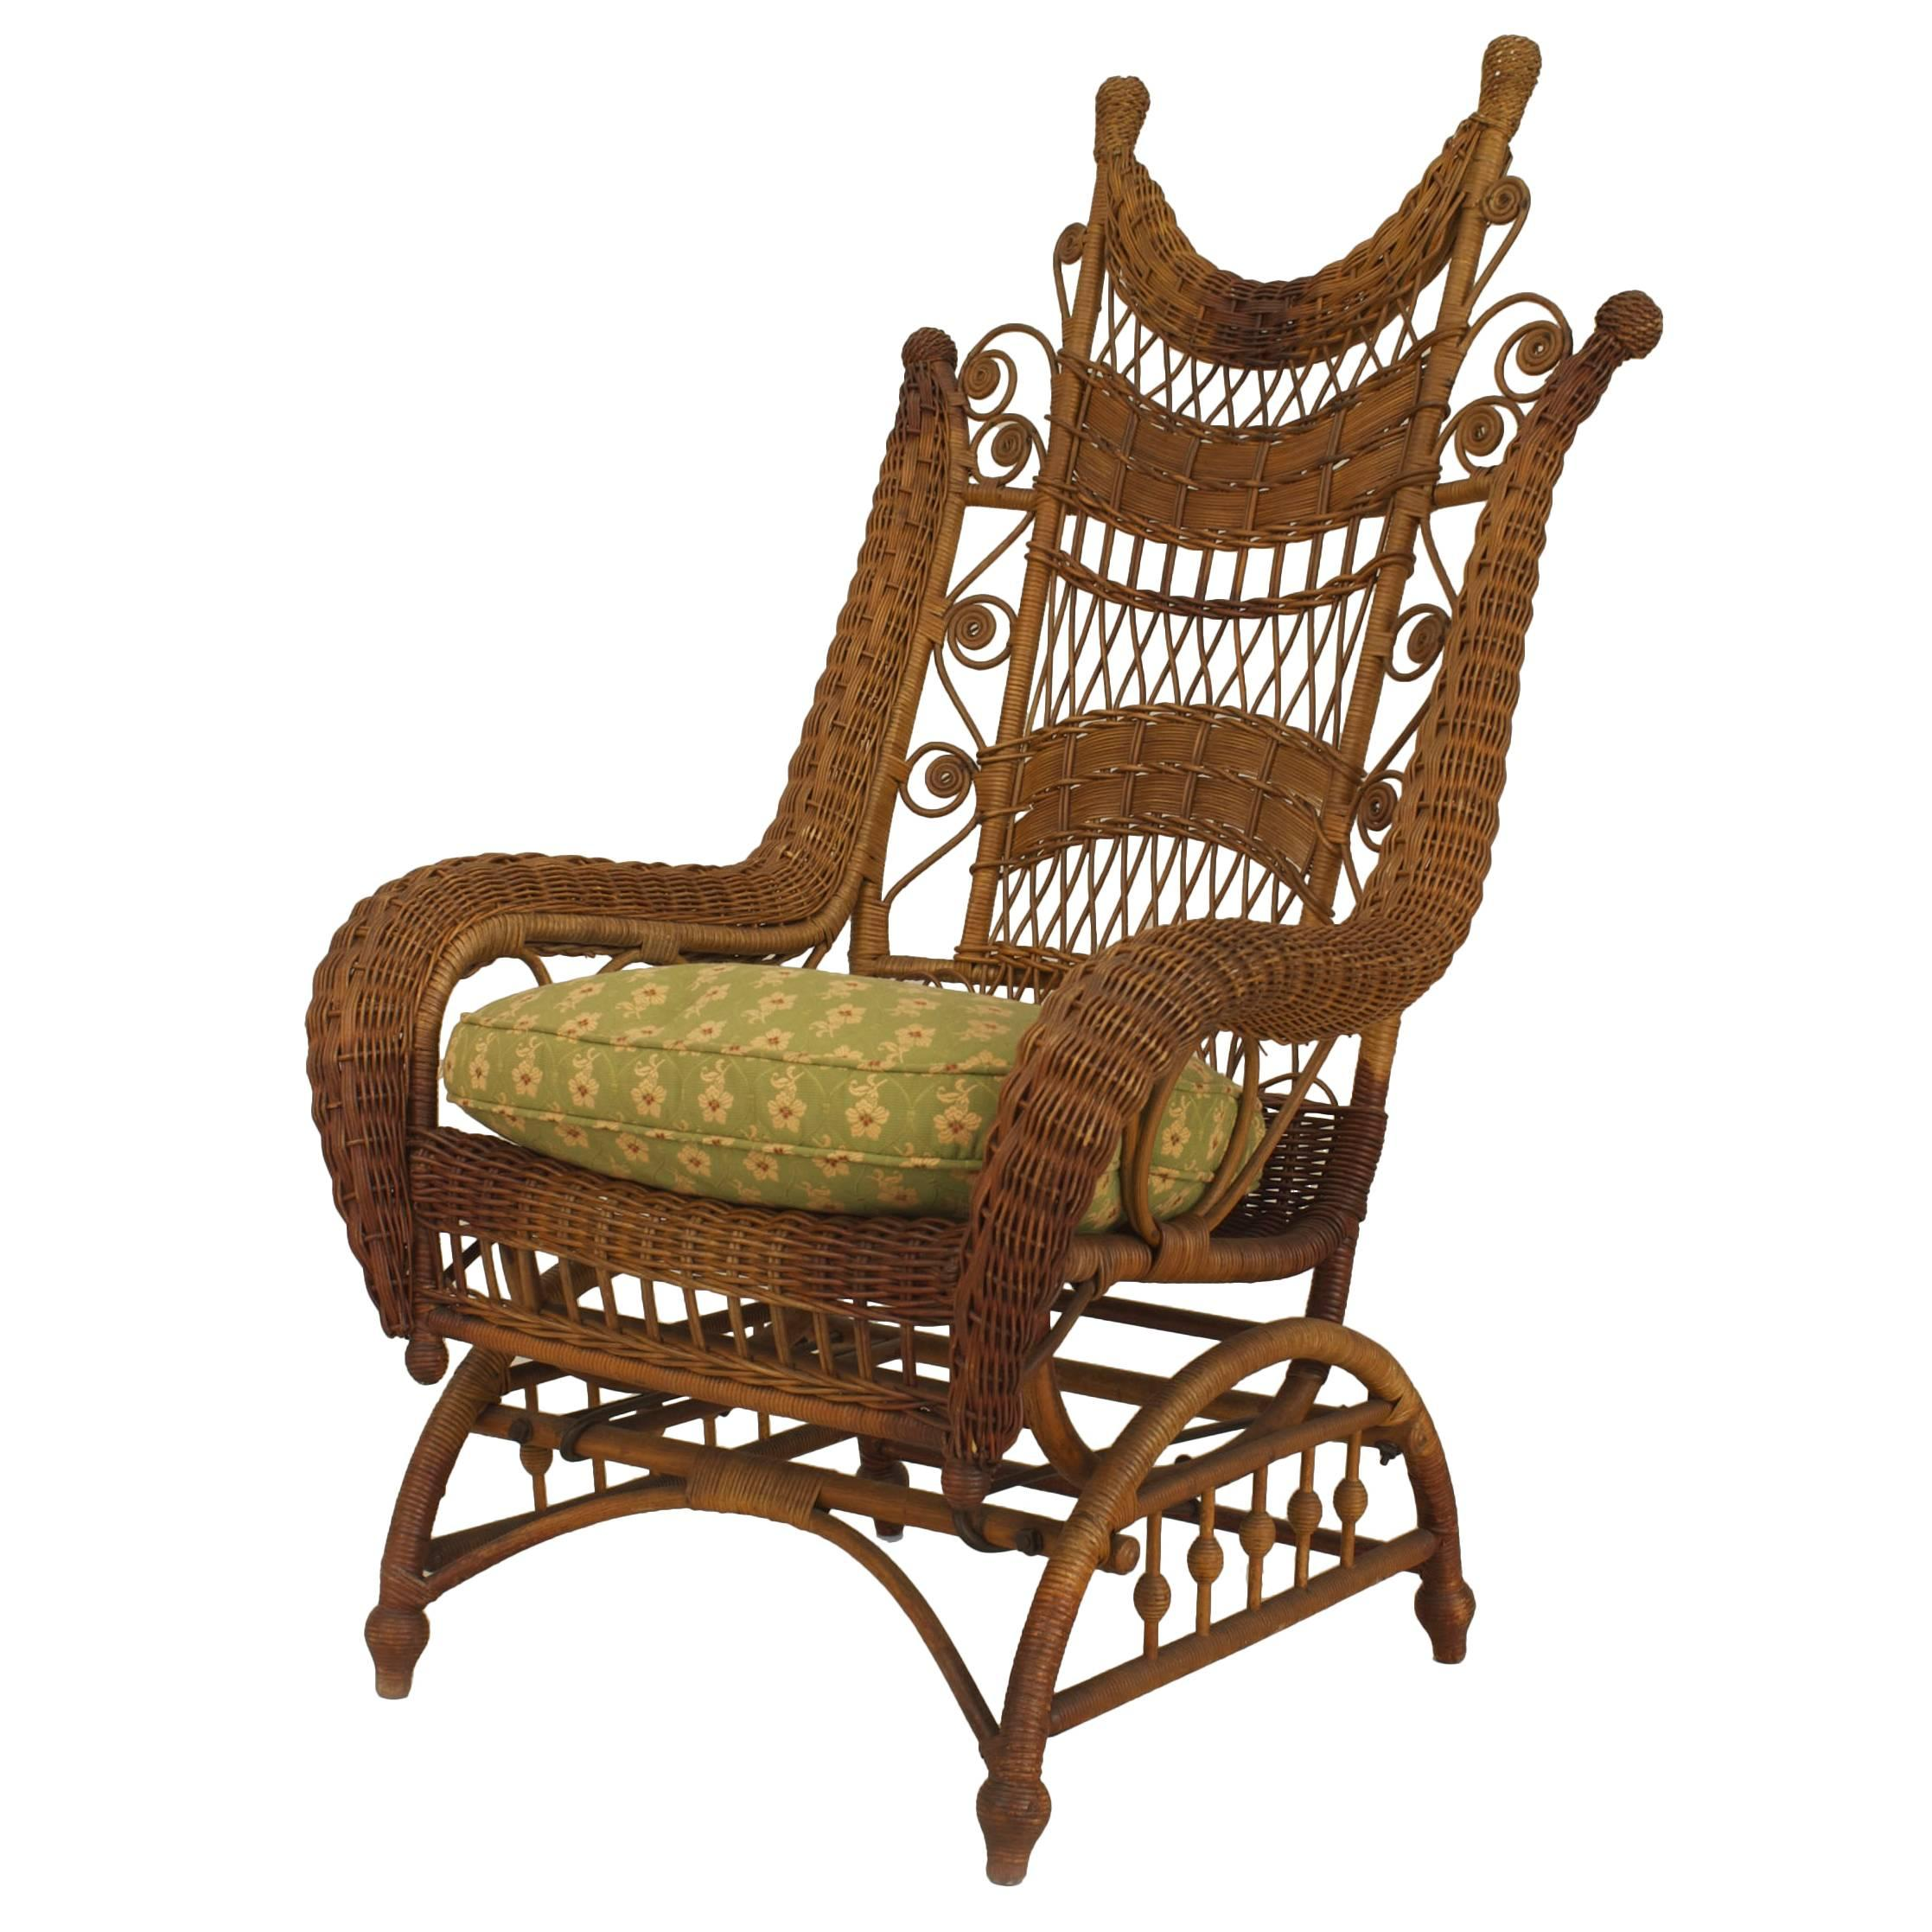 Wicker Rocking Chair 19th Century American Ornate High Back Wicker Rocking Chair